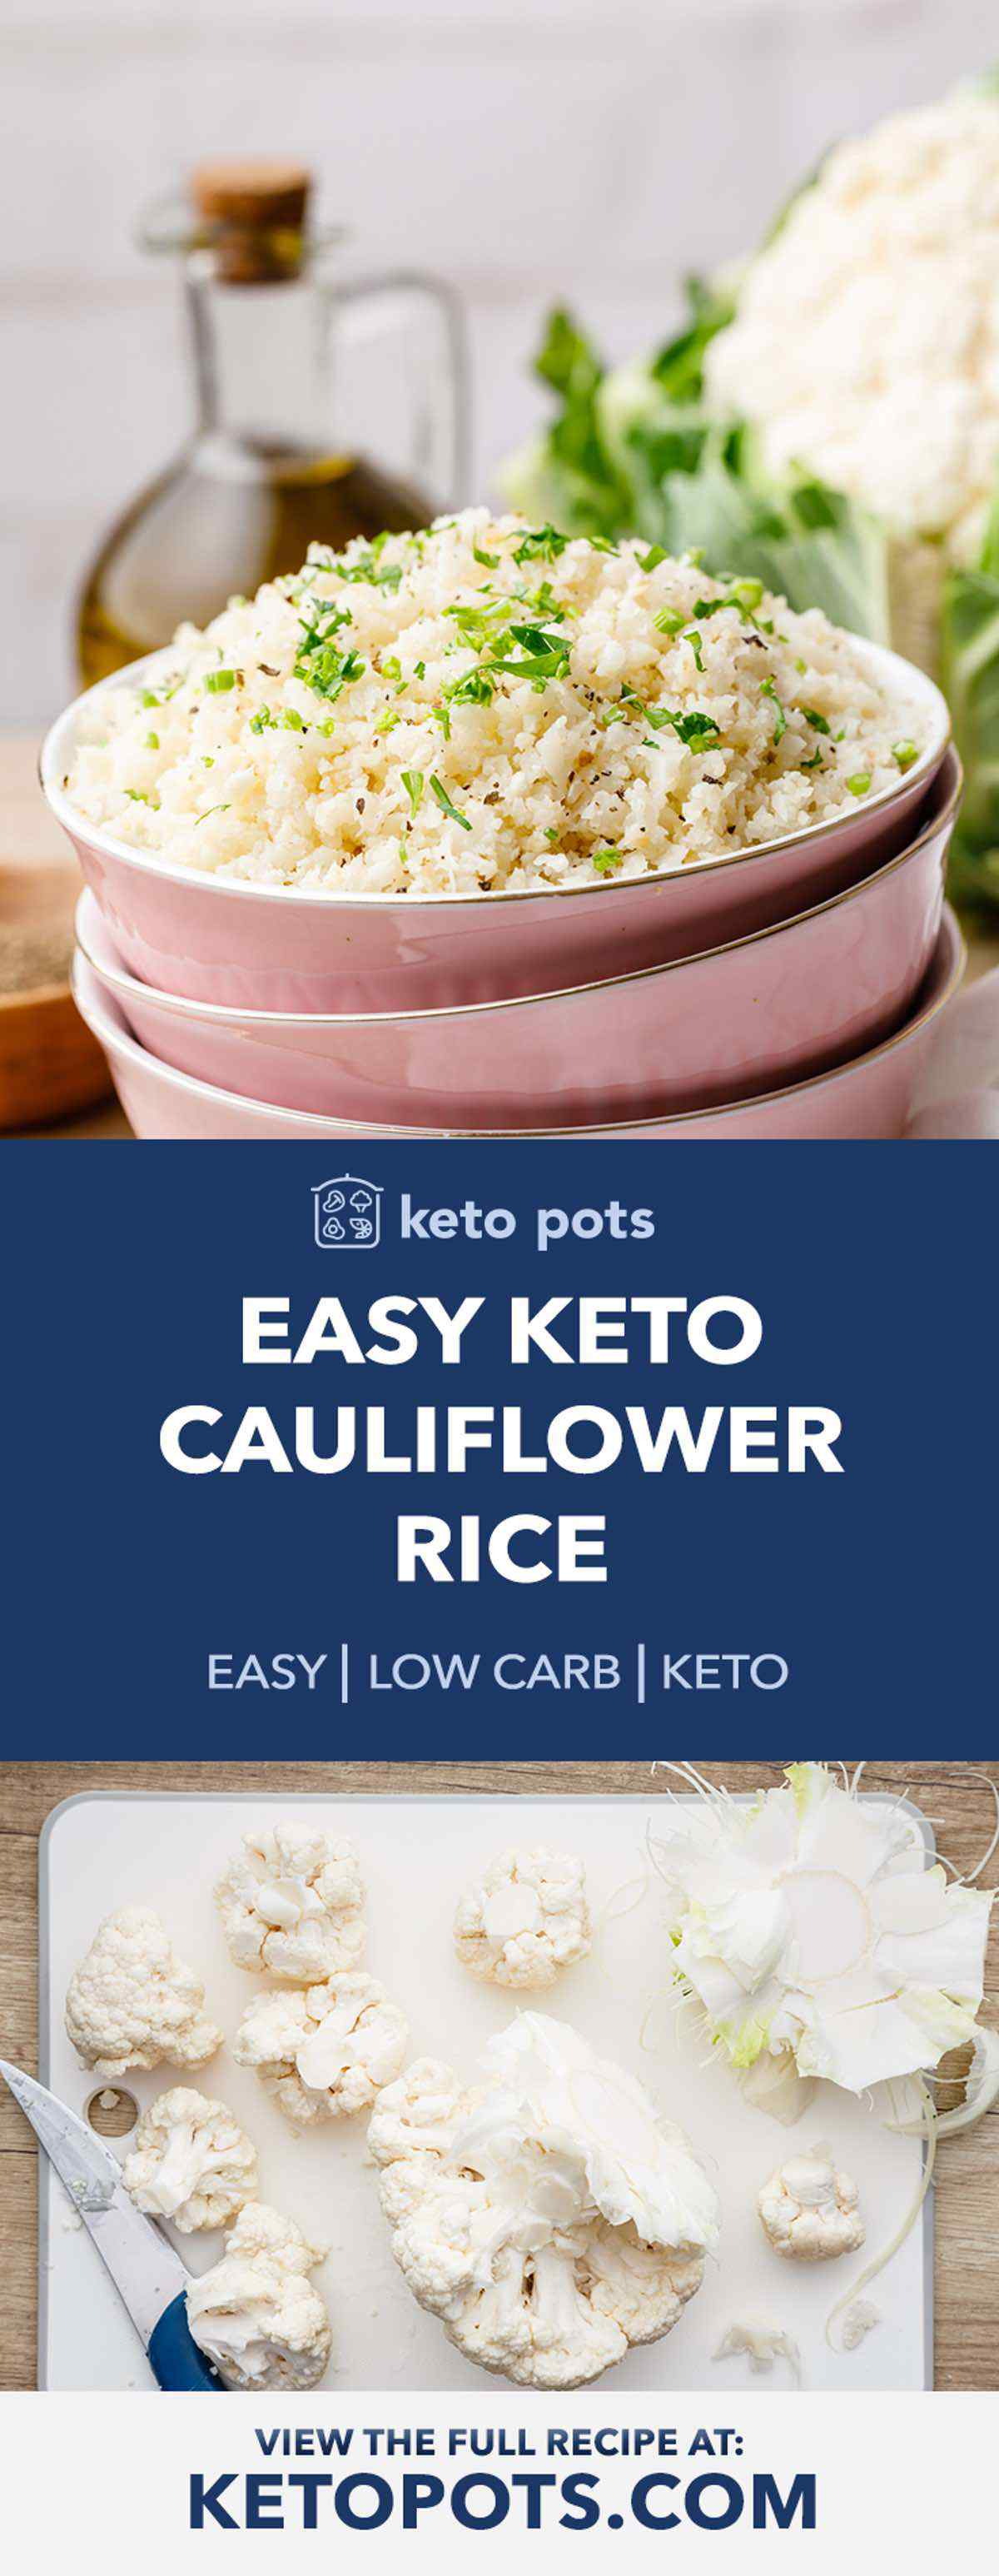 Easy Low Carb Keto Cauliflower Rice